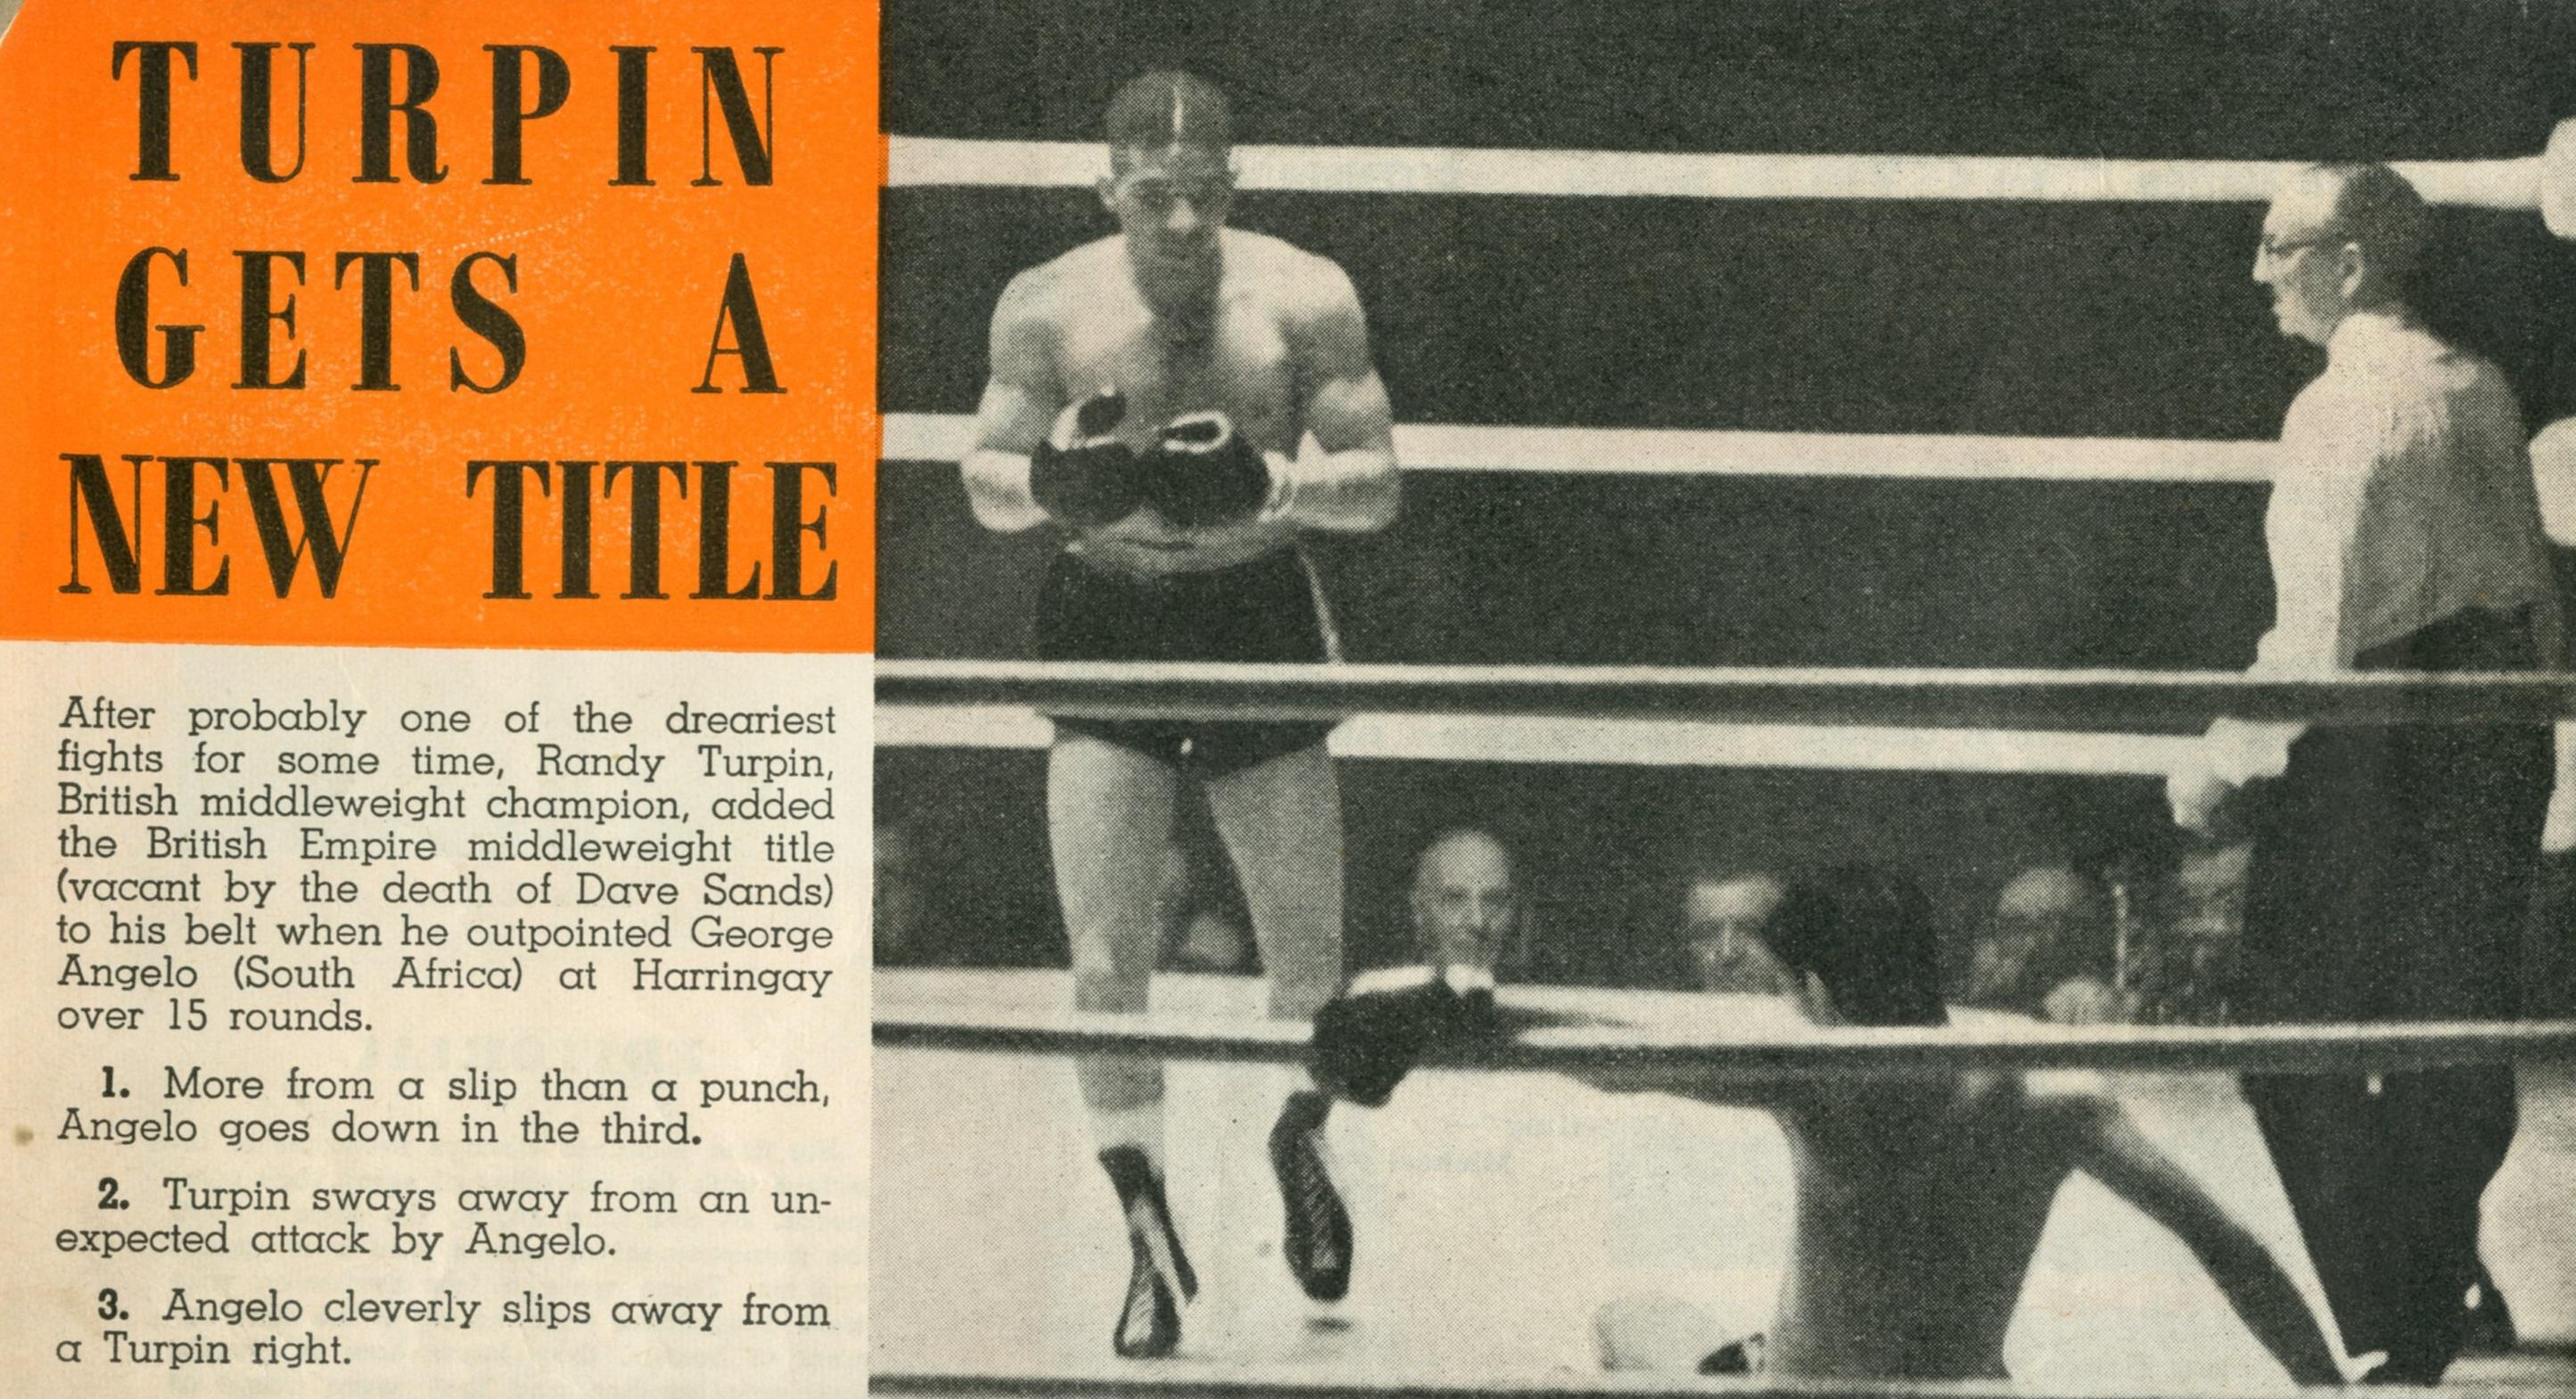 The boxer Randolph Turpin appearing at Harringay Arena